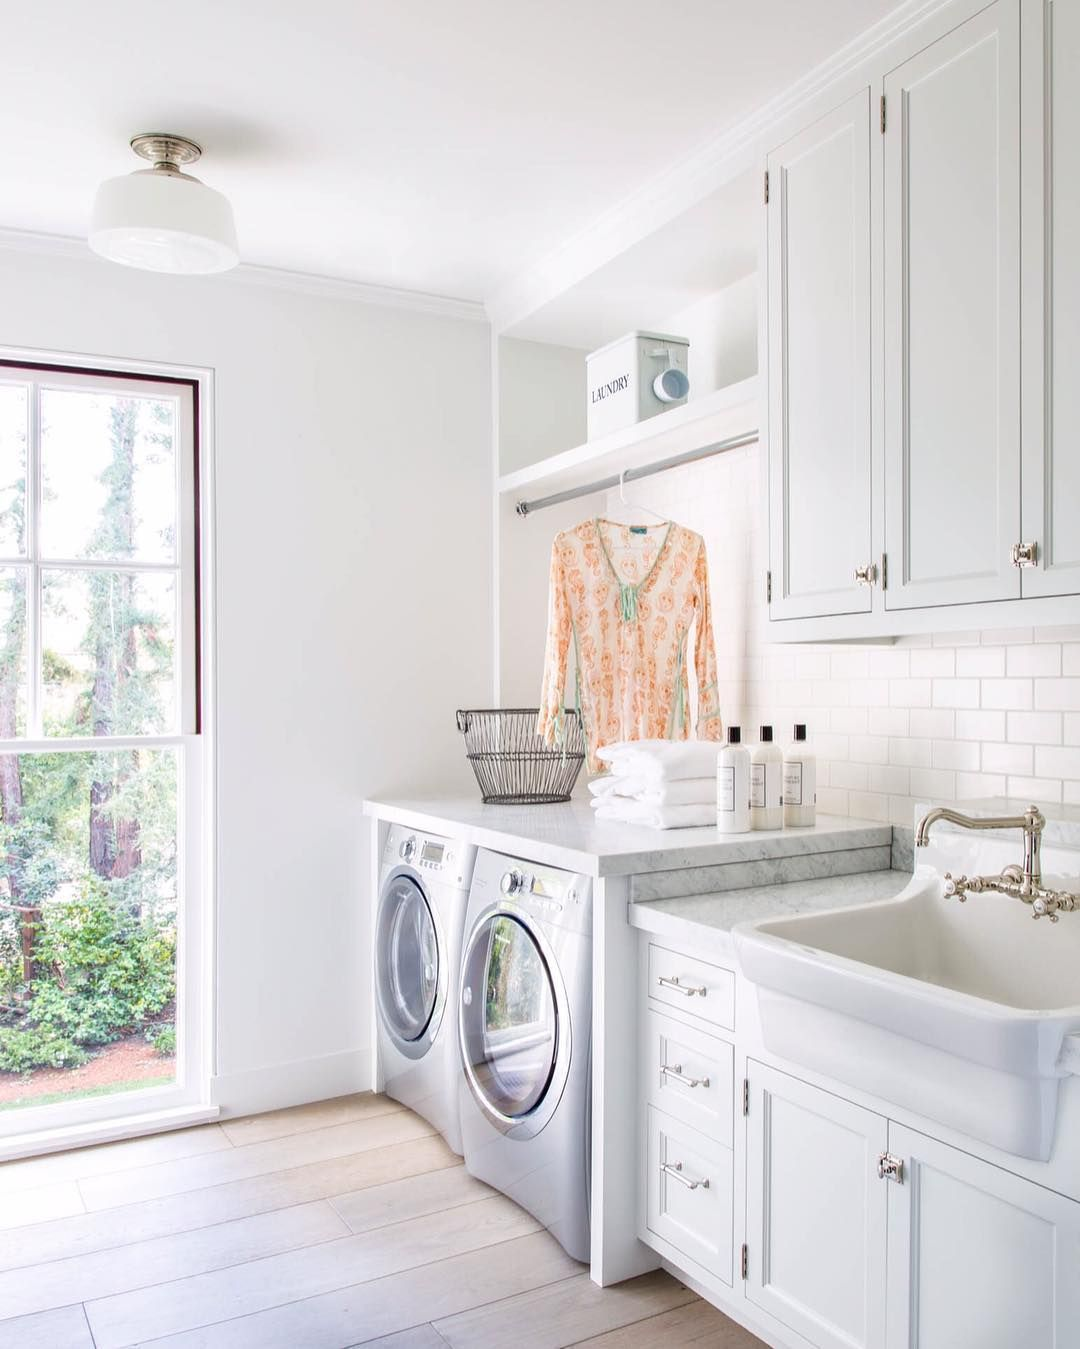 Trends We Re Loving Wall Mounted Faucets Laundry Room Layouts